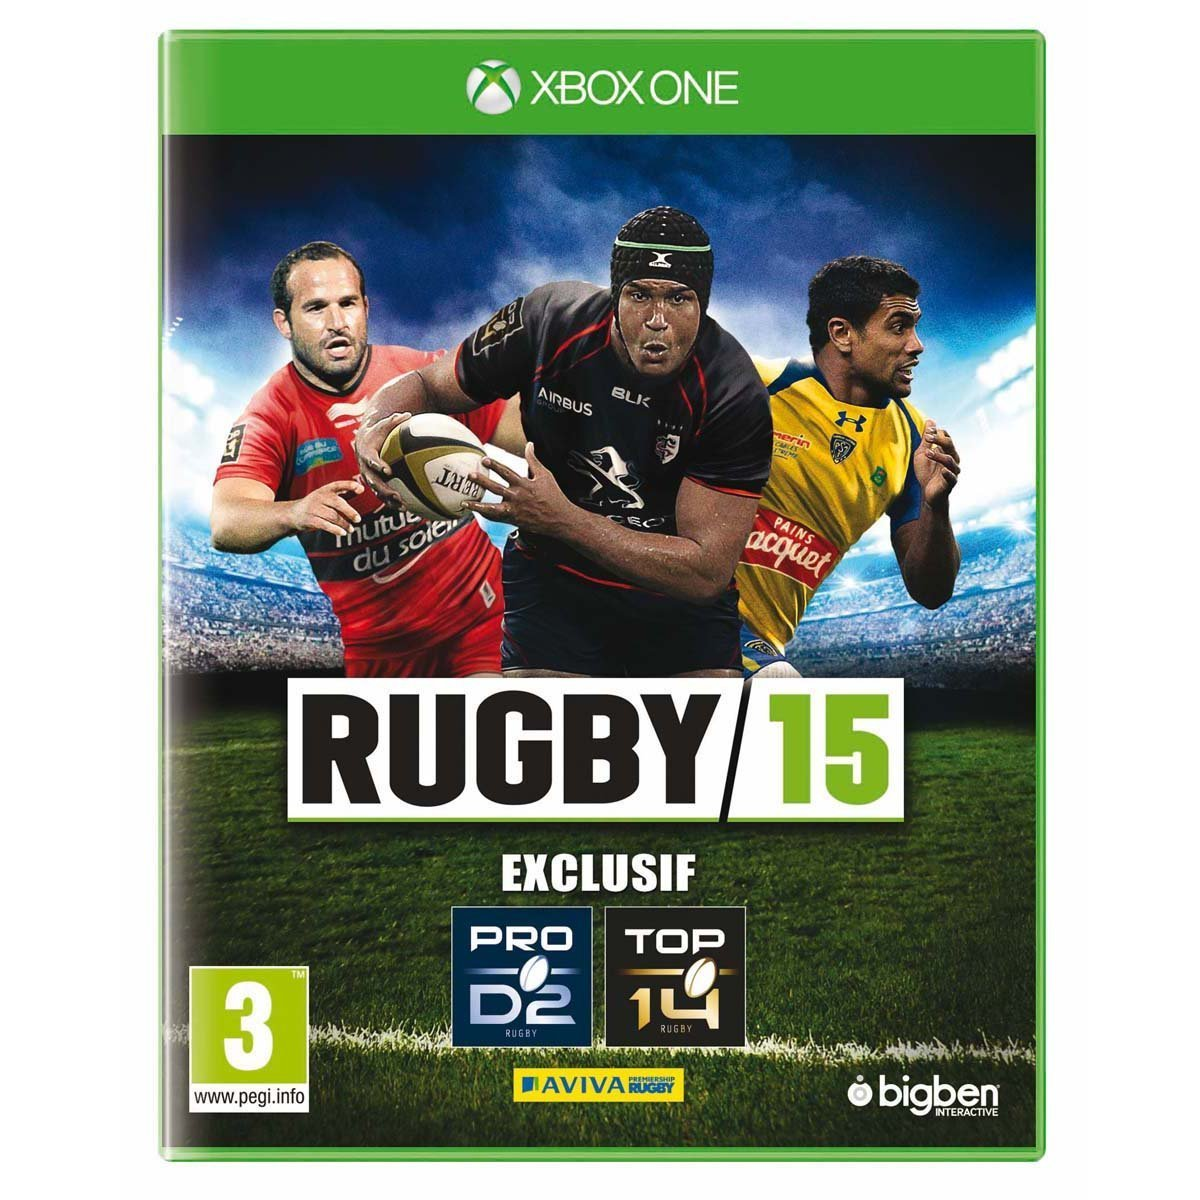 rugby 15 sur xbox one. Black Bedroom Furniture Sets. Home Design Ideas